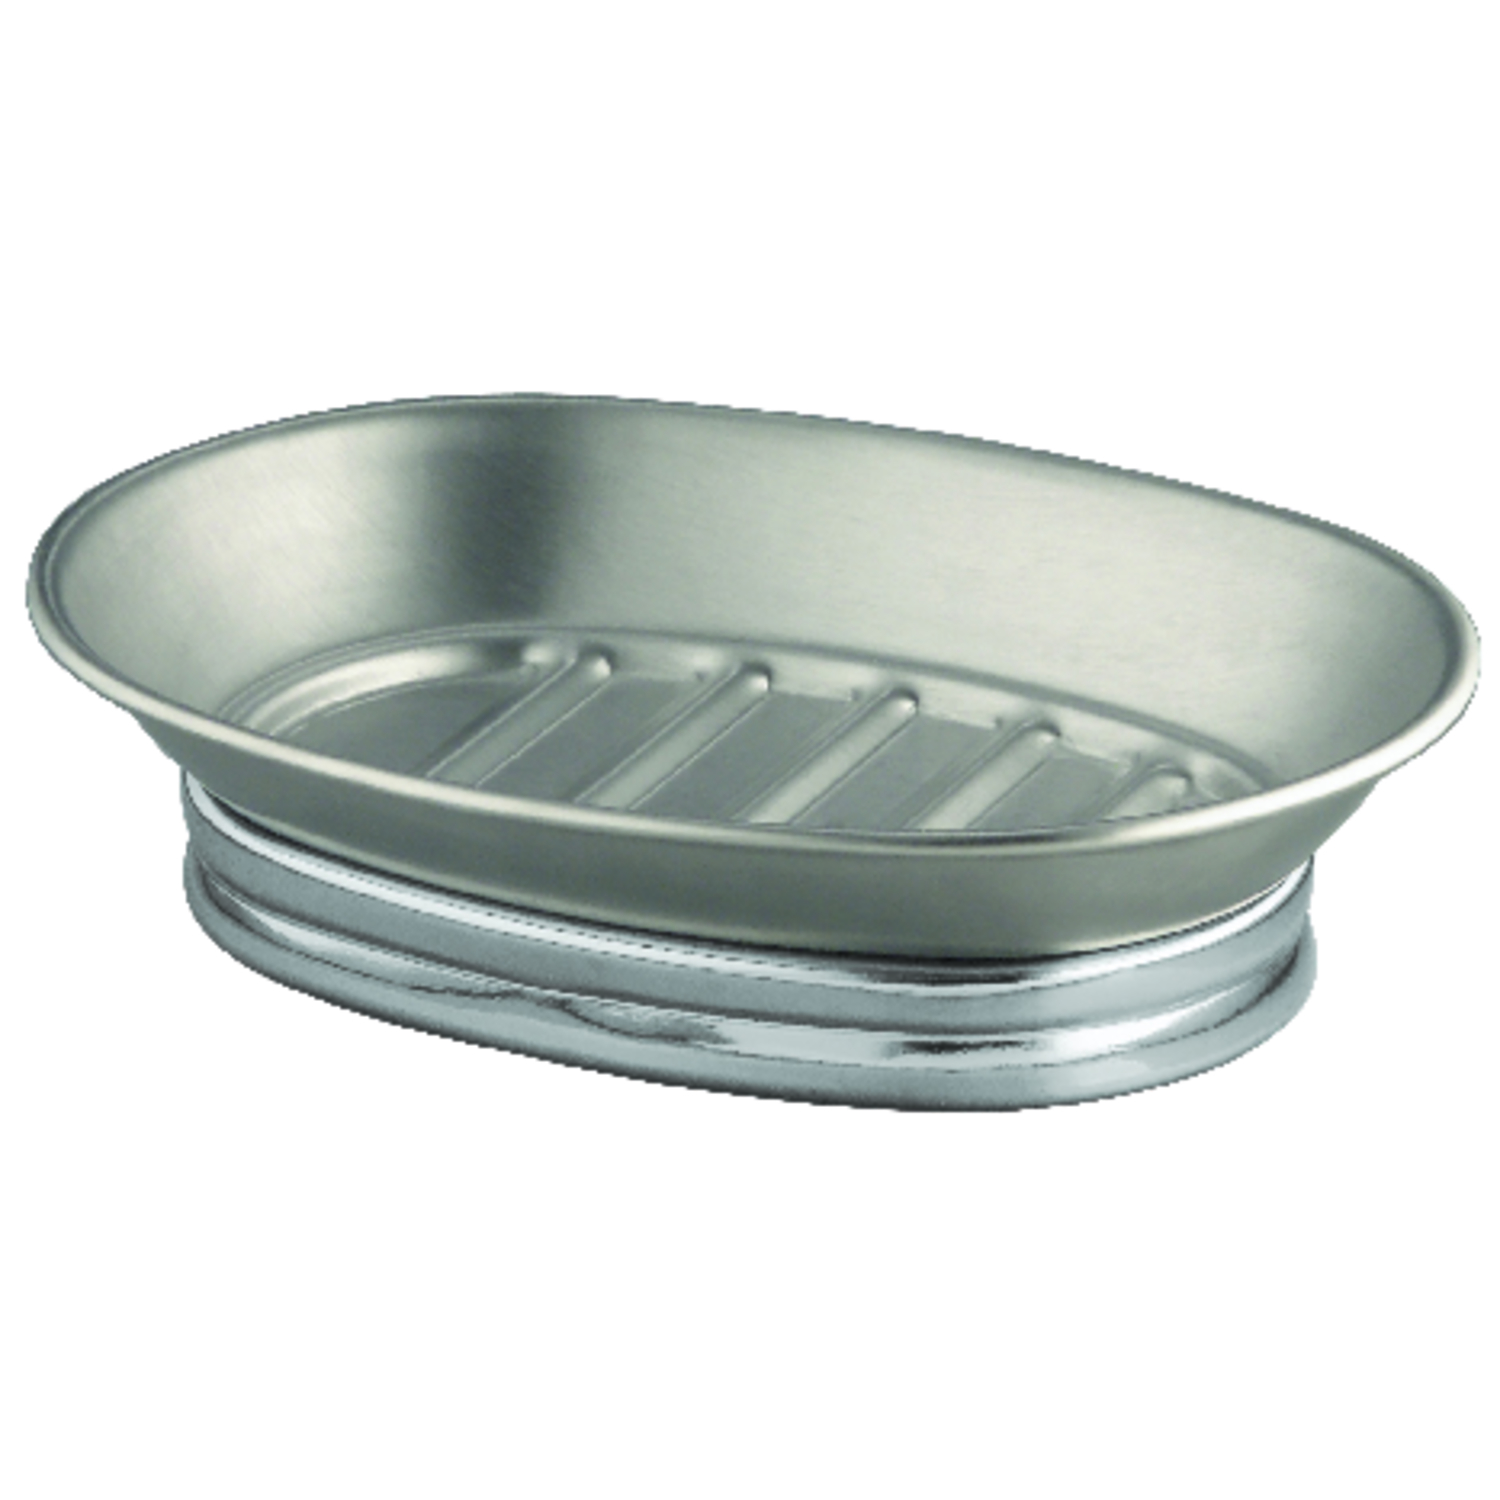 InterDesign  York  Soap Dish  3.8 in. H x 5.6 in. L x 1.5 in. W Stainless steel  Silver  Chrome